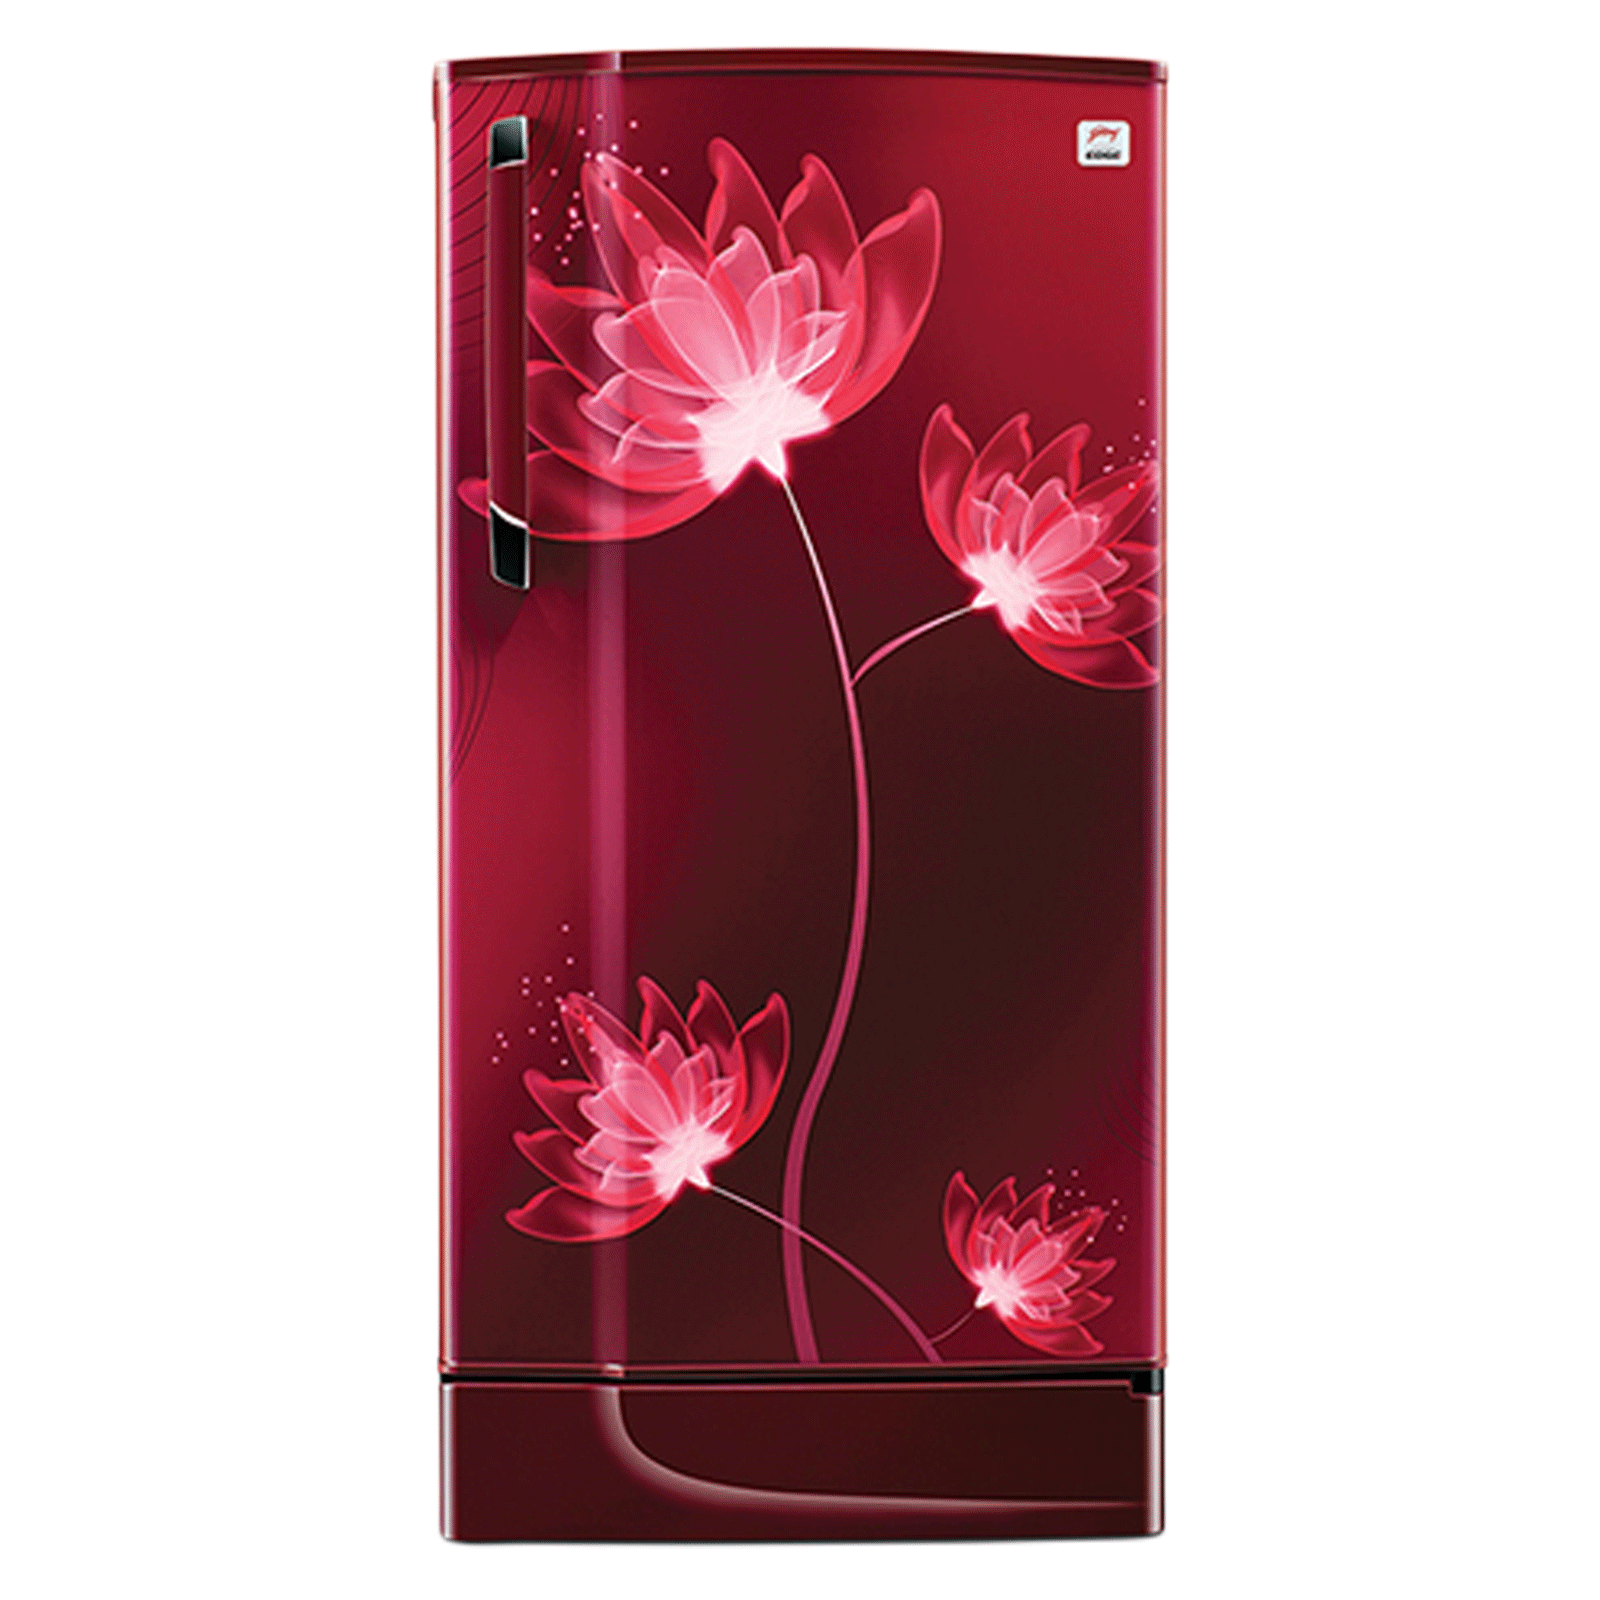 Godrej 221 Litres 3 Star Direct Cool Single Door Refrigerator (Large Vegetable Tray, RD Edge SX 236C 33 TAI GL WN, Glass Wine)_1